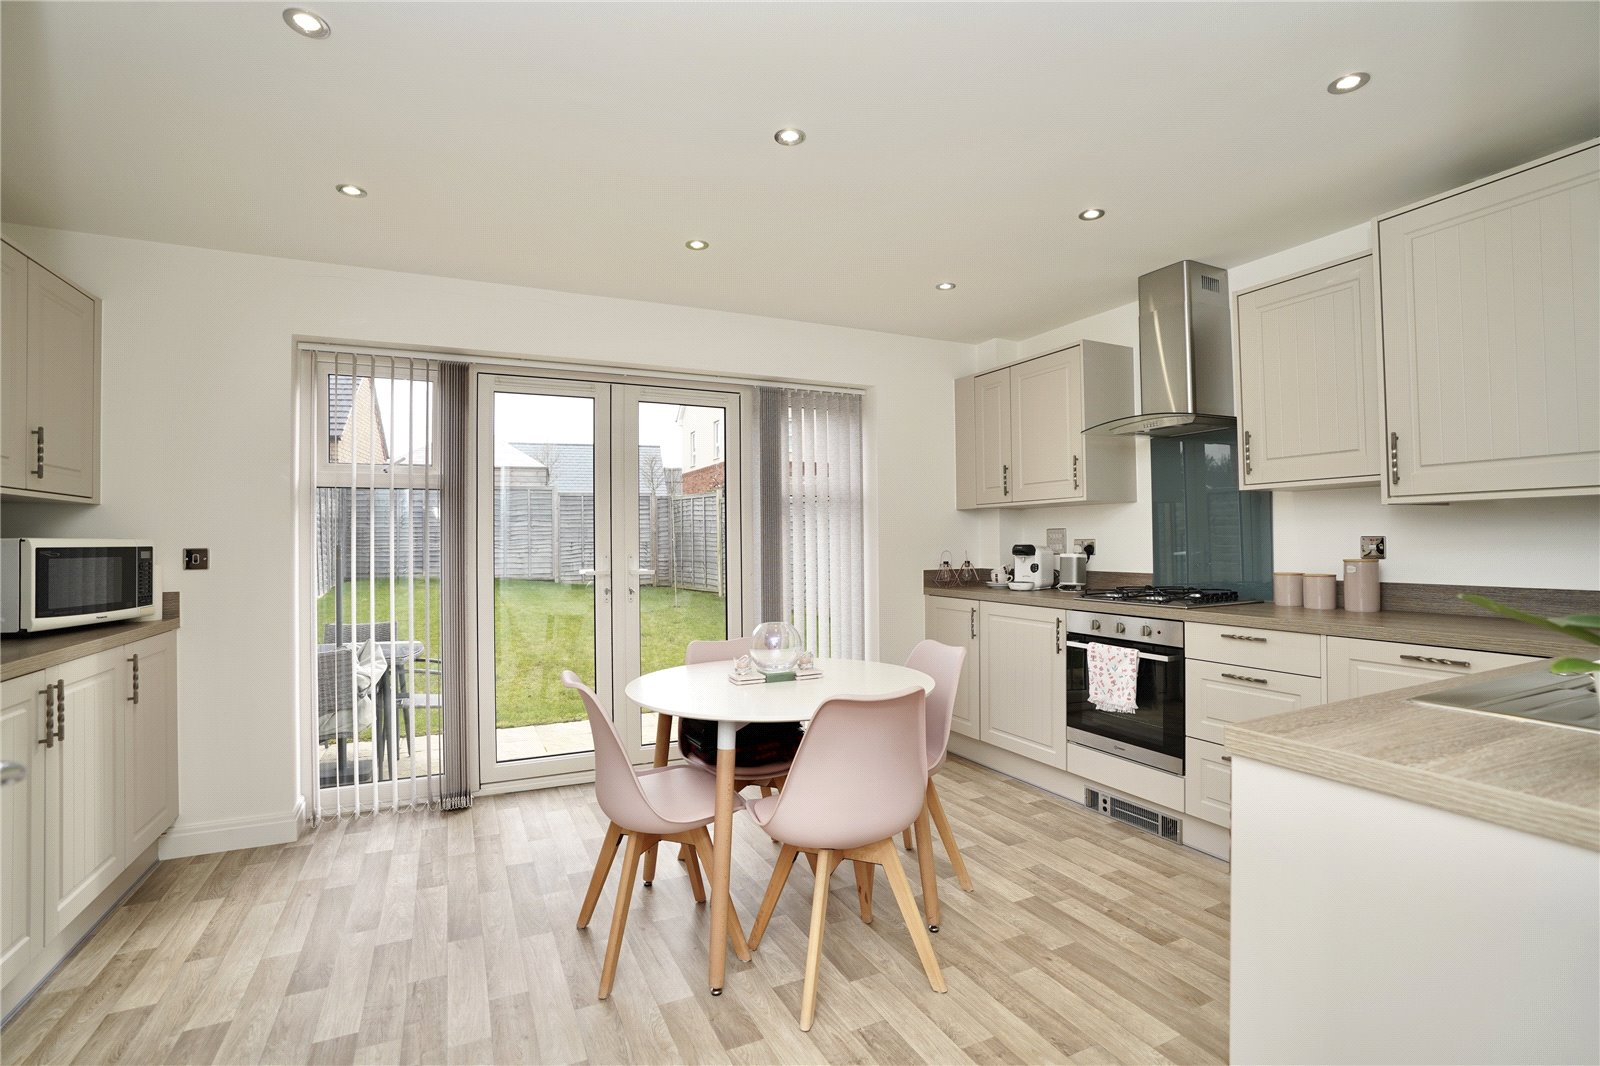 3 bed house for sale in Sawtry, PE28 5ZJ 1